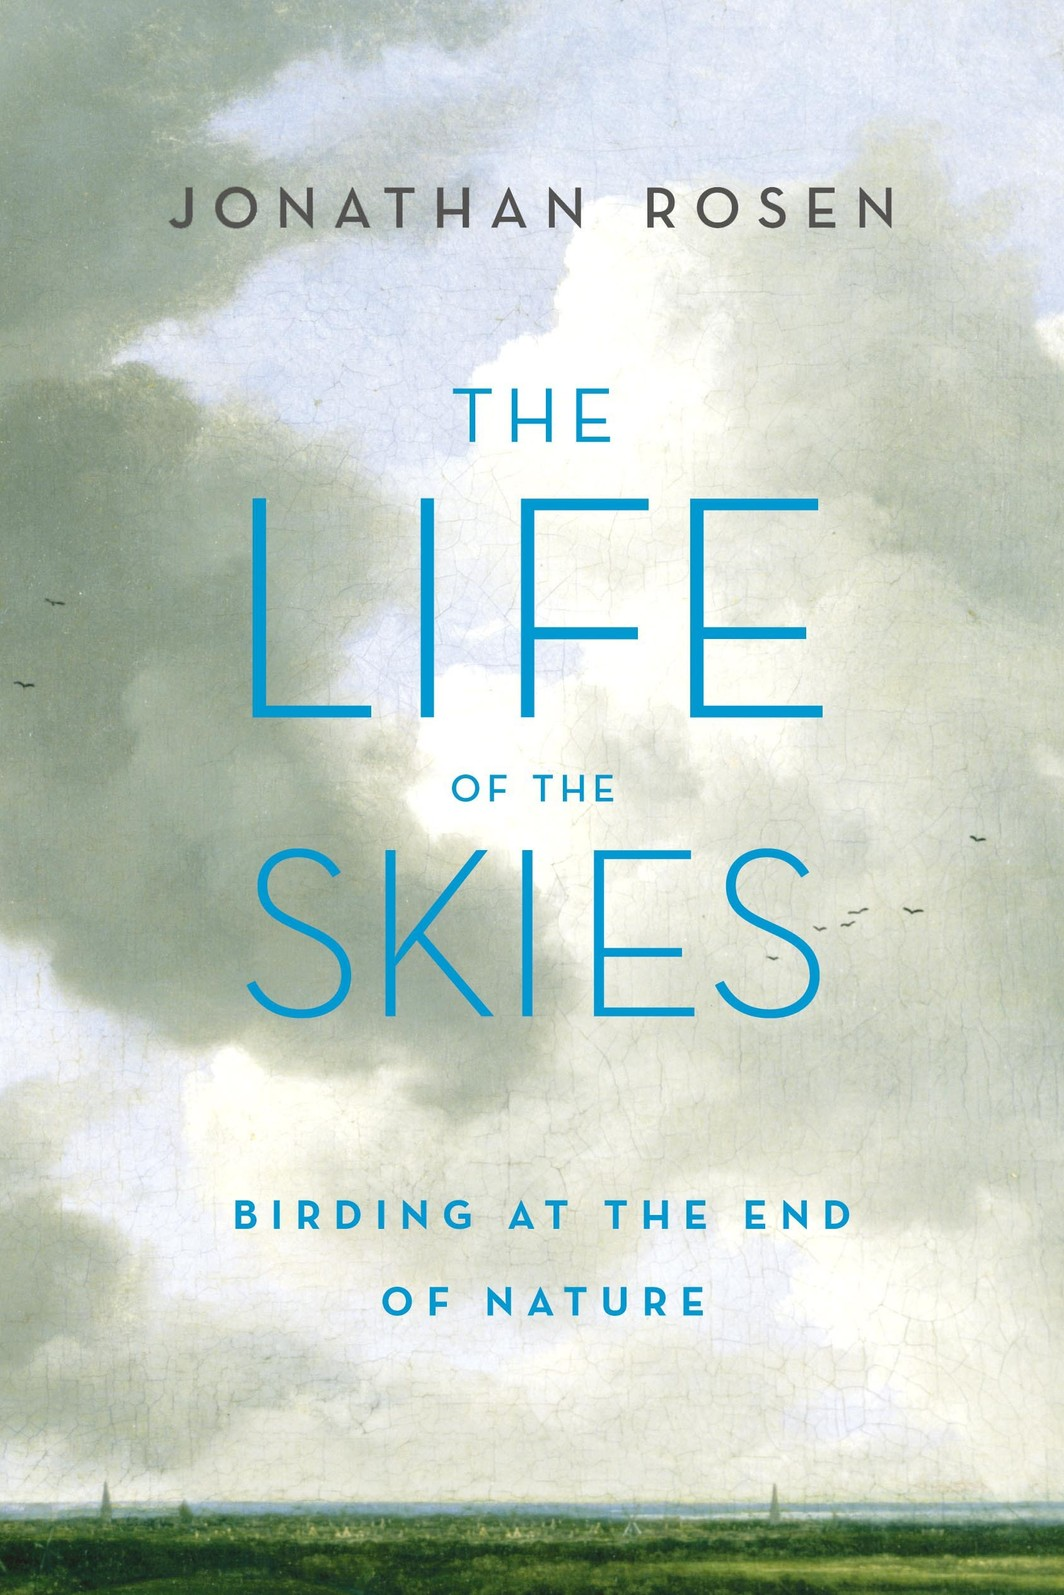 The cover of The Life of the Skies